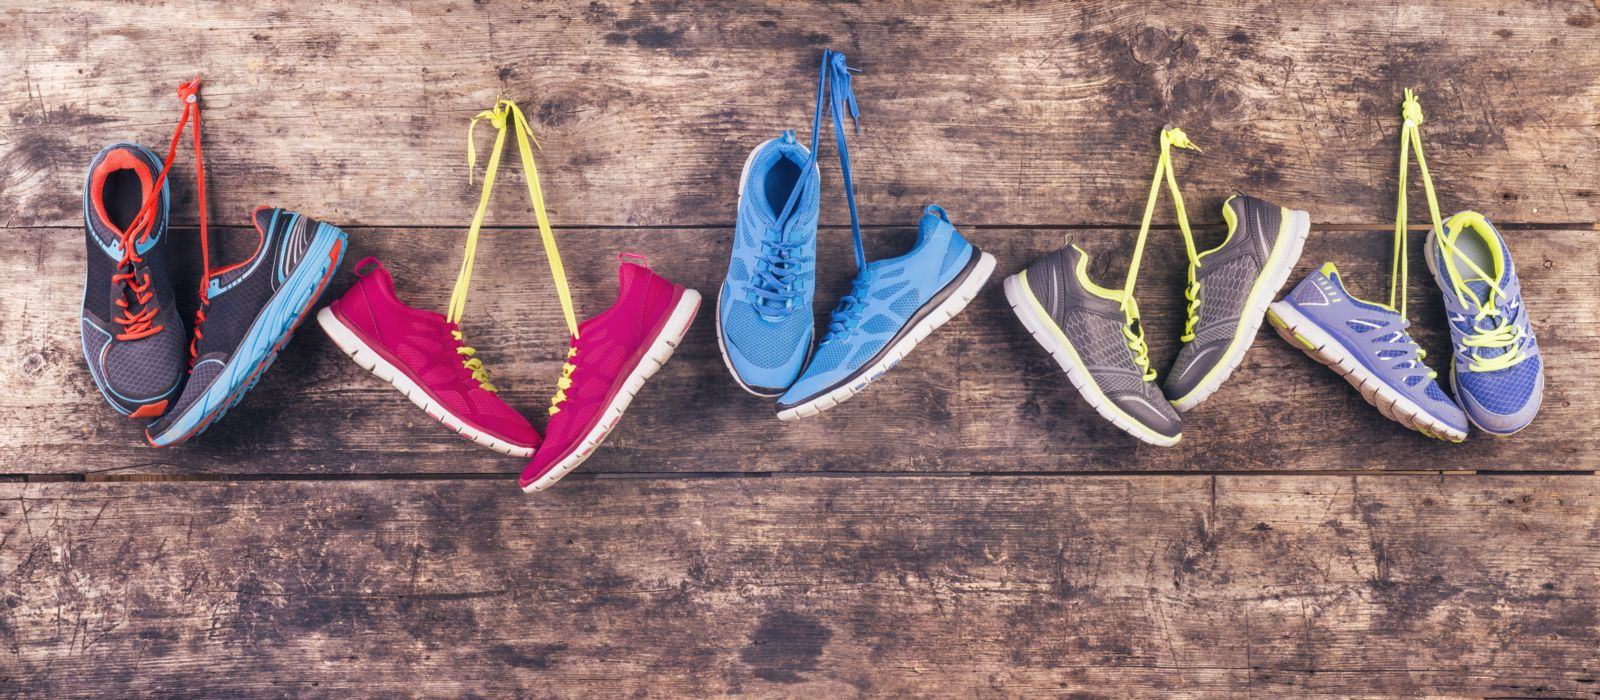 It turns out that the most padded shoe may not be the best shoe for runners!